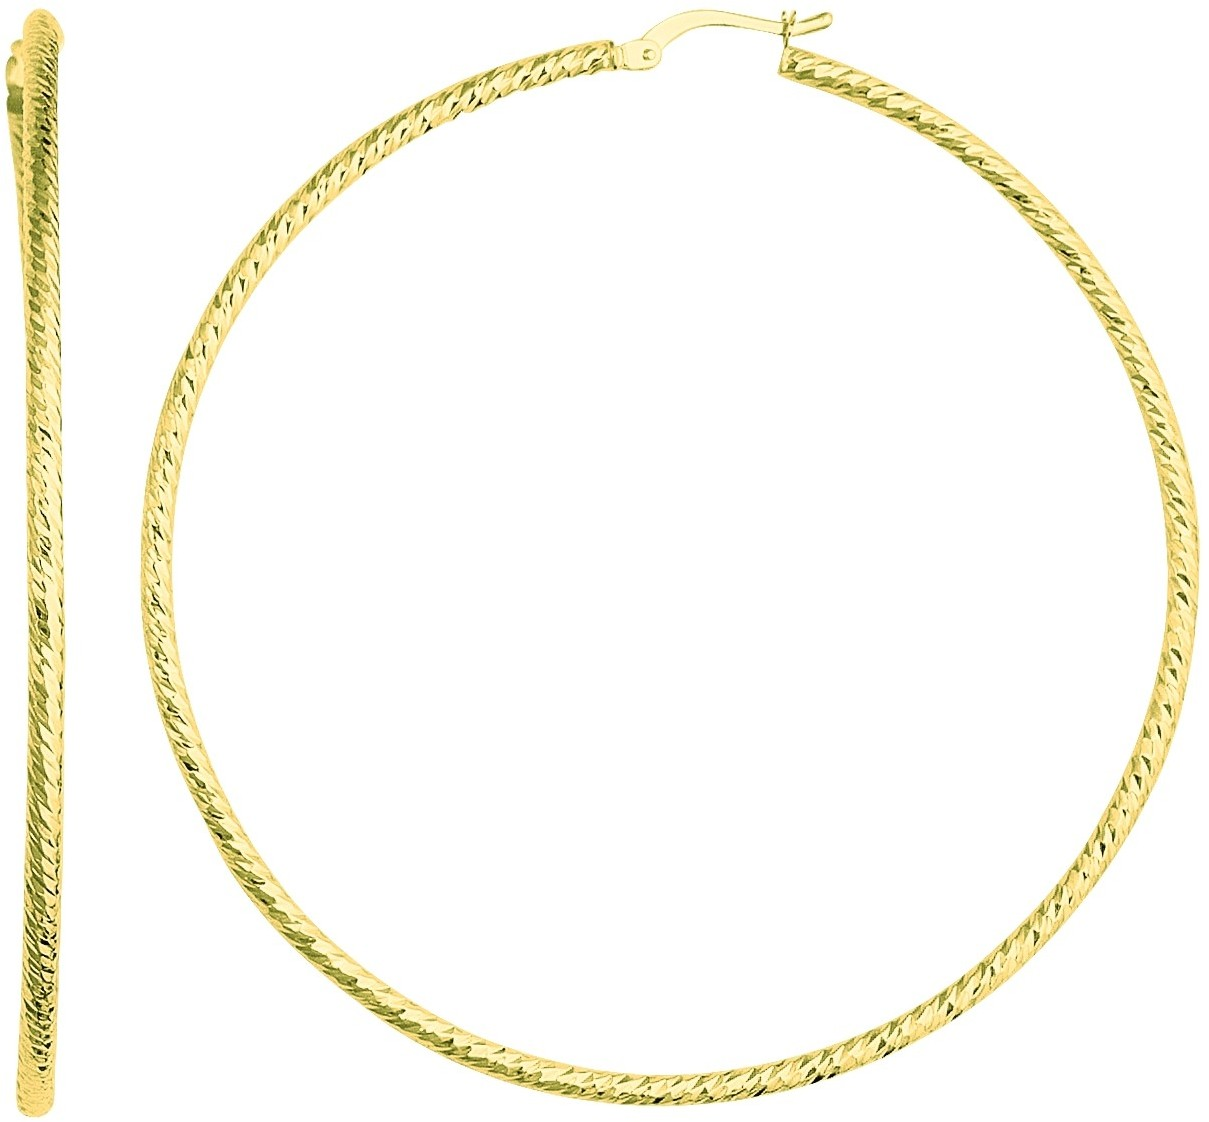 14K Yellow Gold Textured Braided Polished Round Large Hoop Earrings